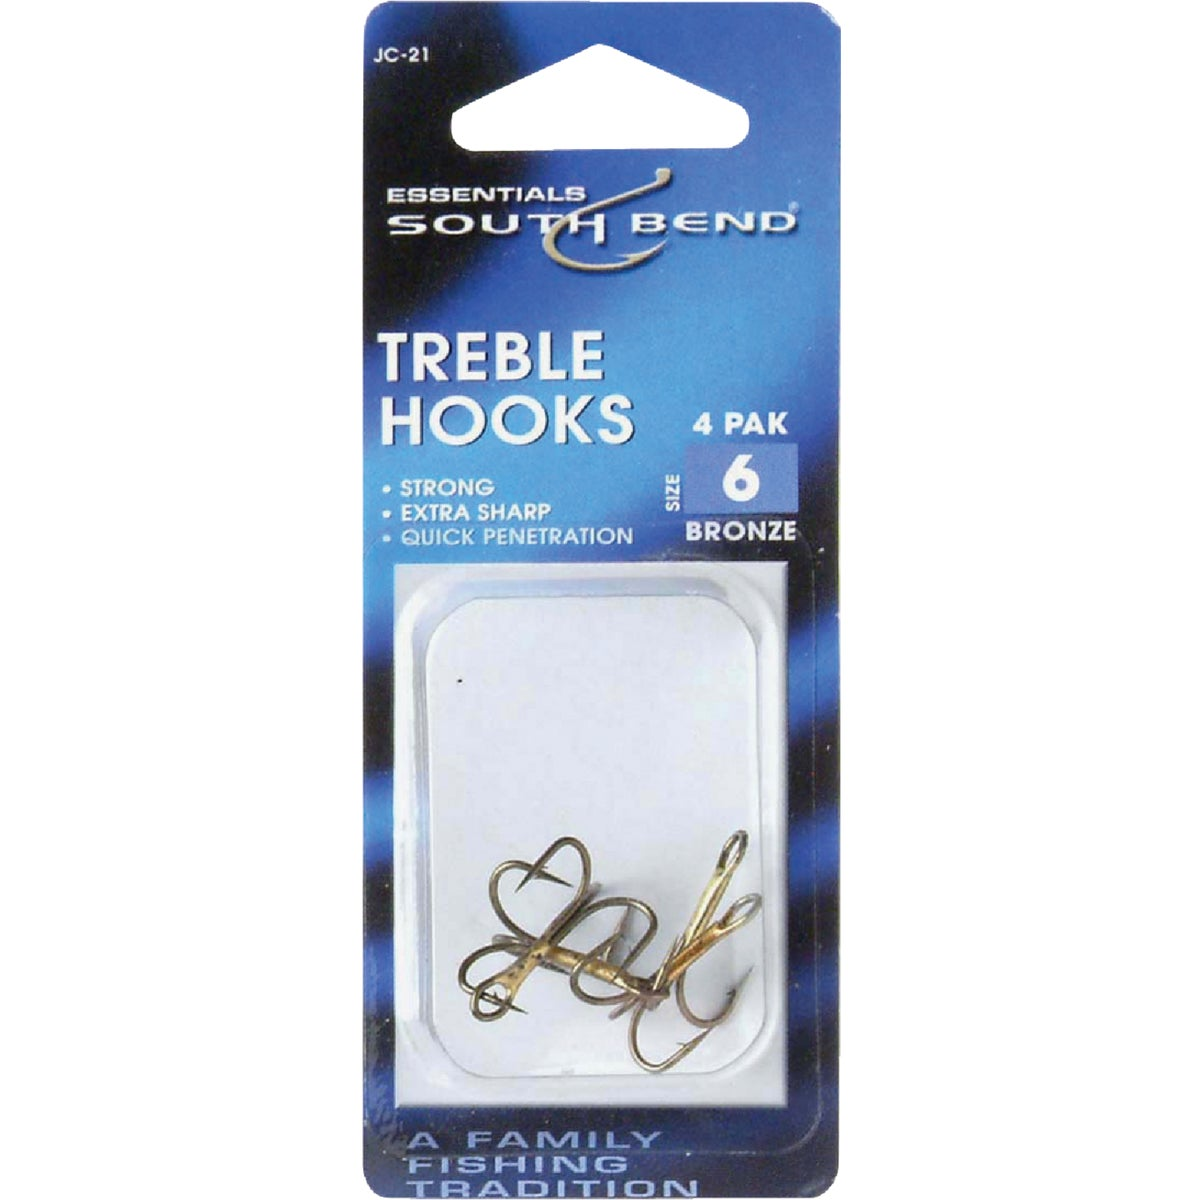 SZ 6 TREBLE HOOKS - JC21 by South Bend Sptg Good